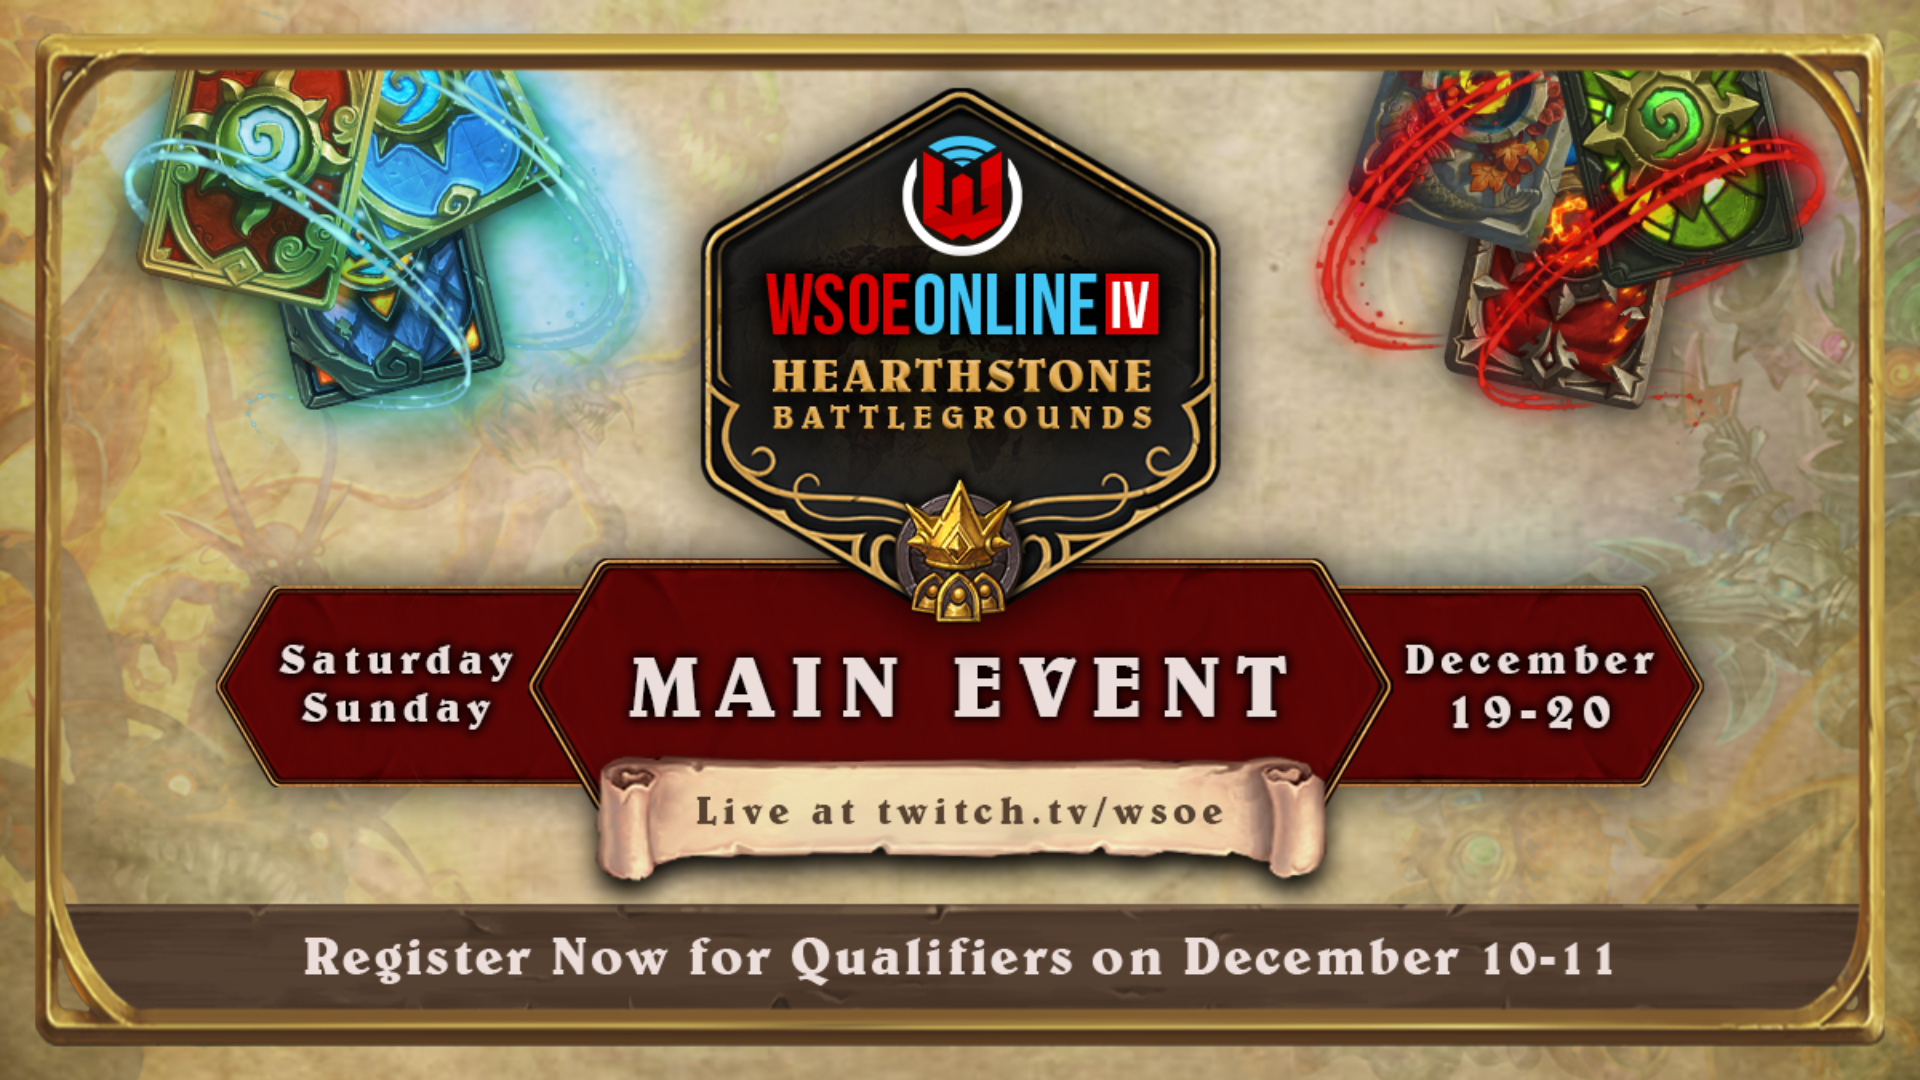 Announcing Wsoe Online Iv Hearthstone Battlegrounds Wsoe When designing a new logo you can be inspired by the visual logos found here. announcing wsoe online iv hearthstone